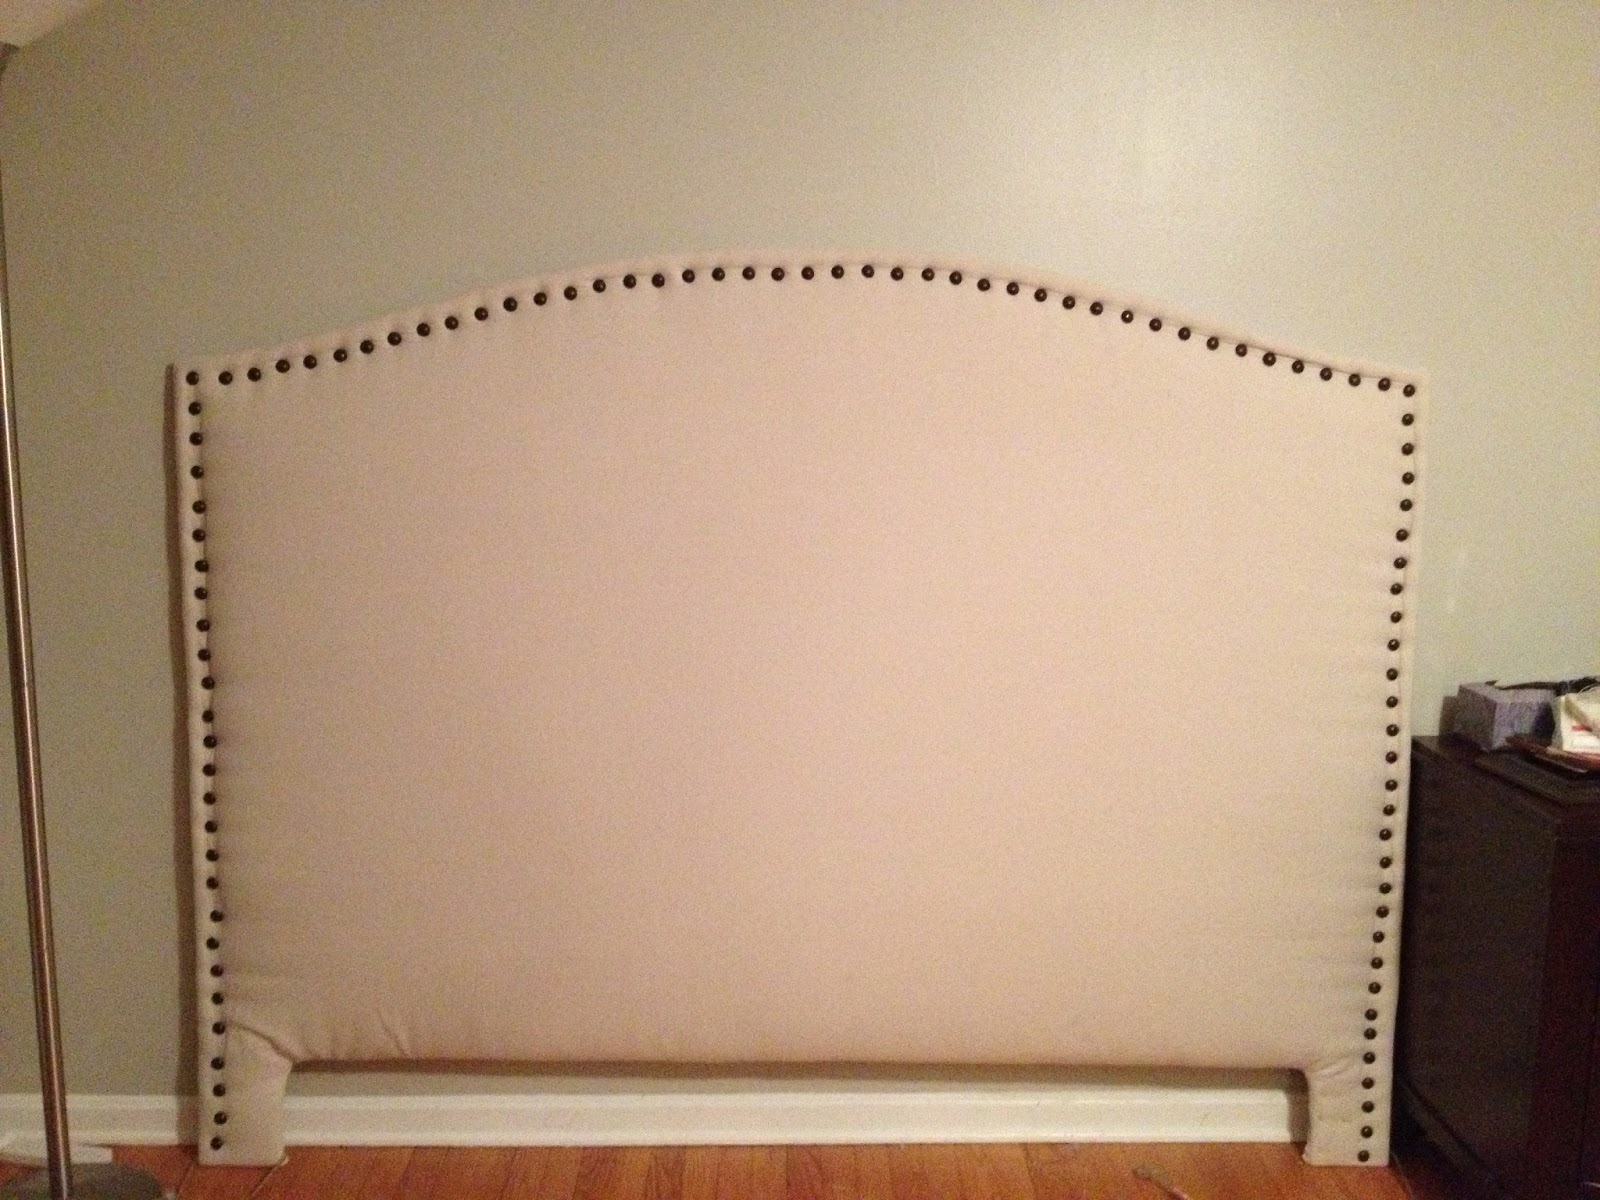 headboard twin in modway gray headboards com amazon fabric tufted upholstered dp emily button cloth size